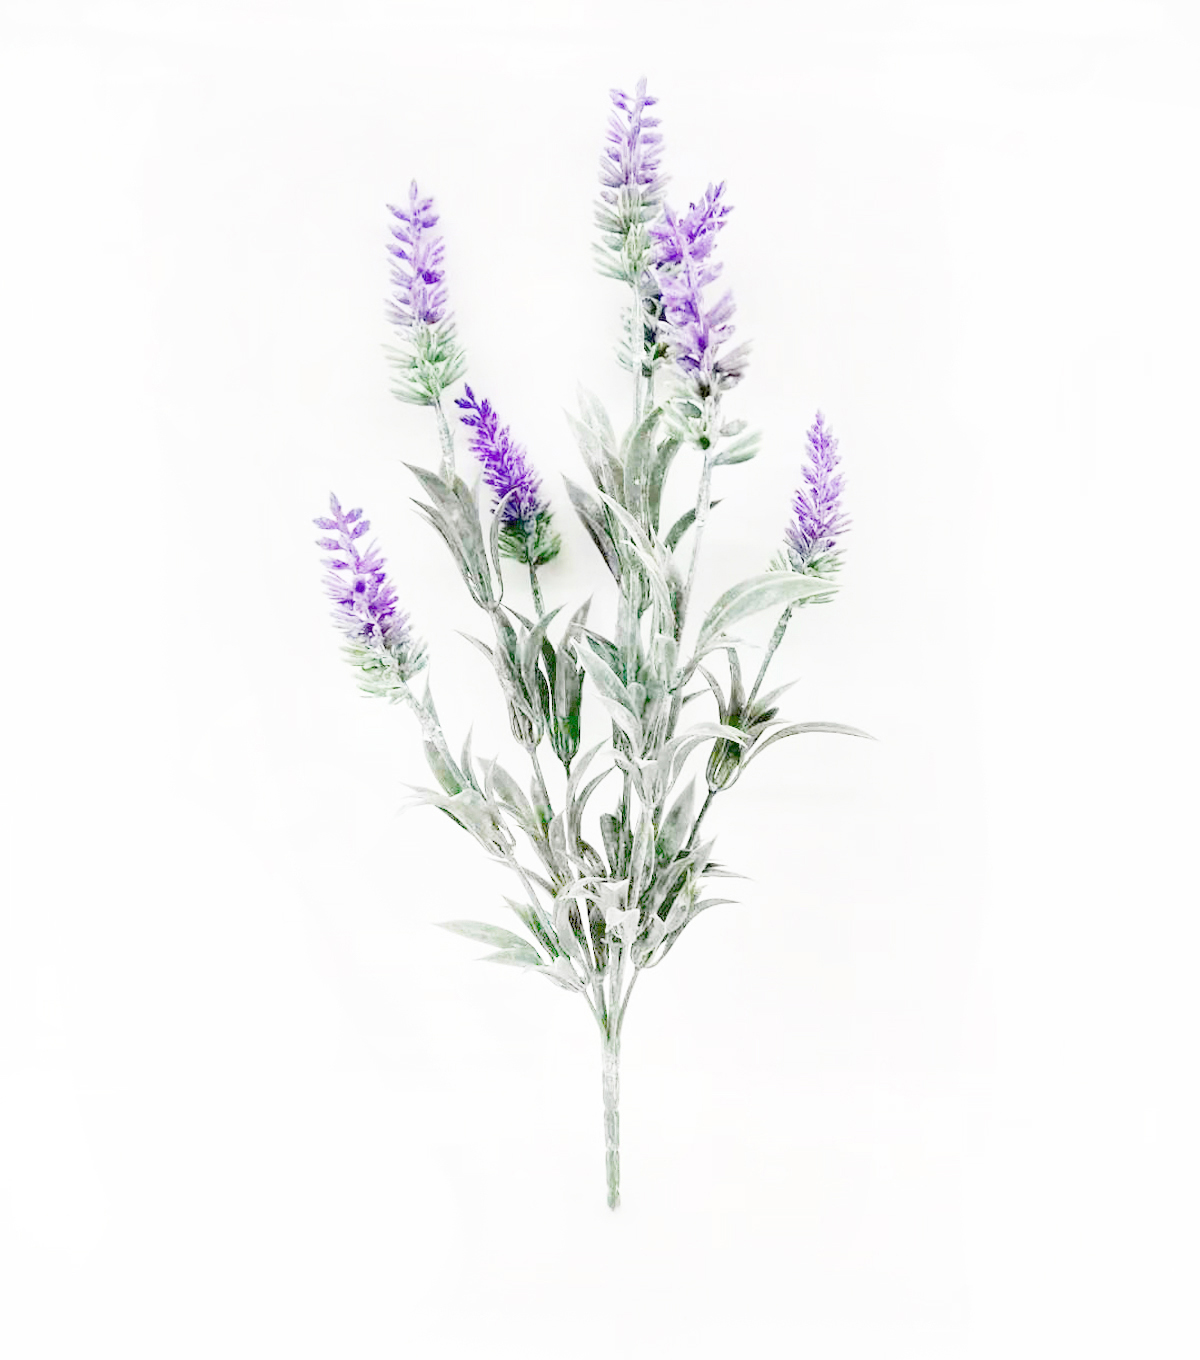 Bright Ideas Spring 15 Lavender Bush Joann